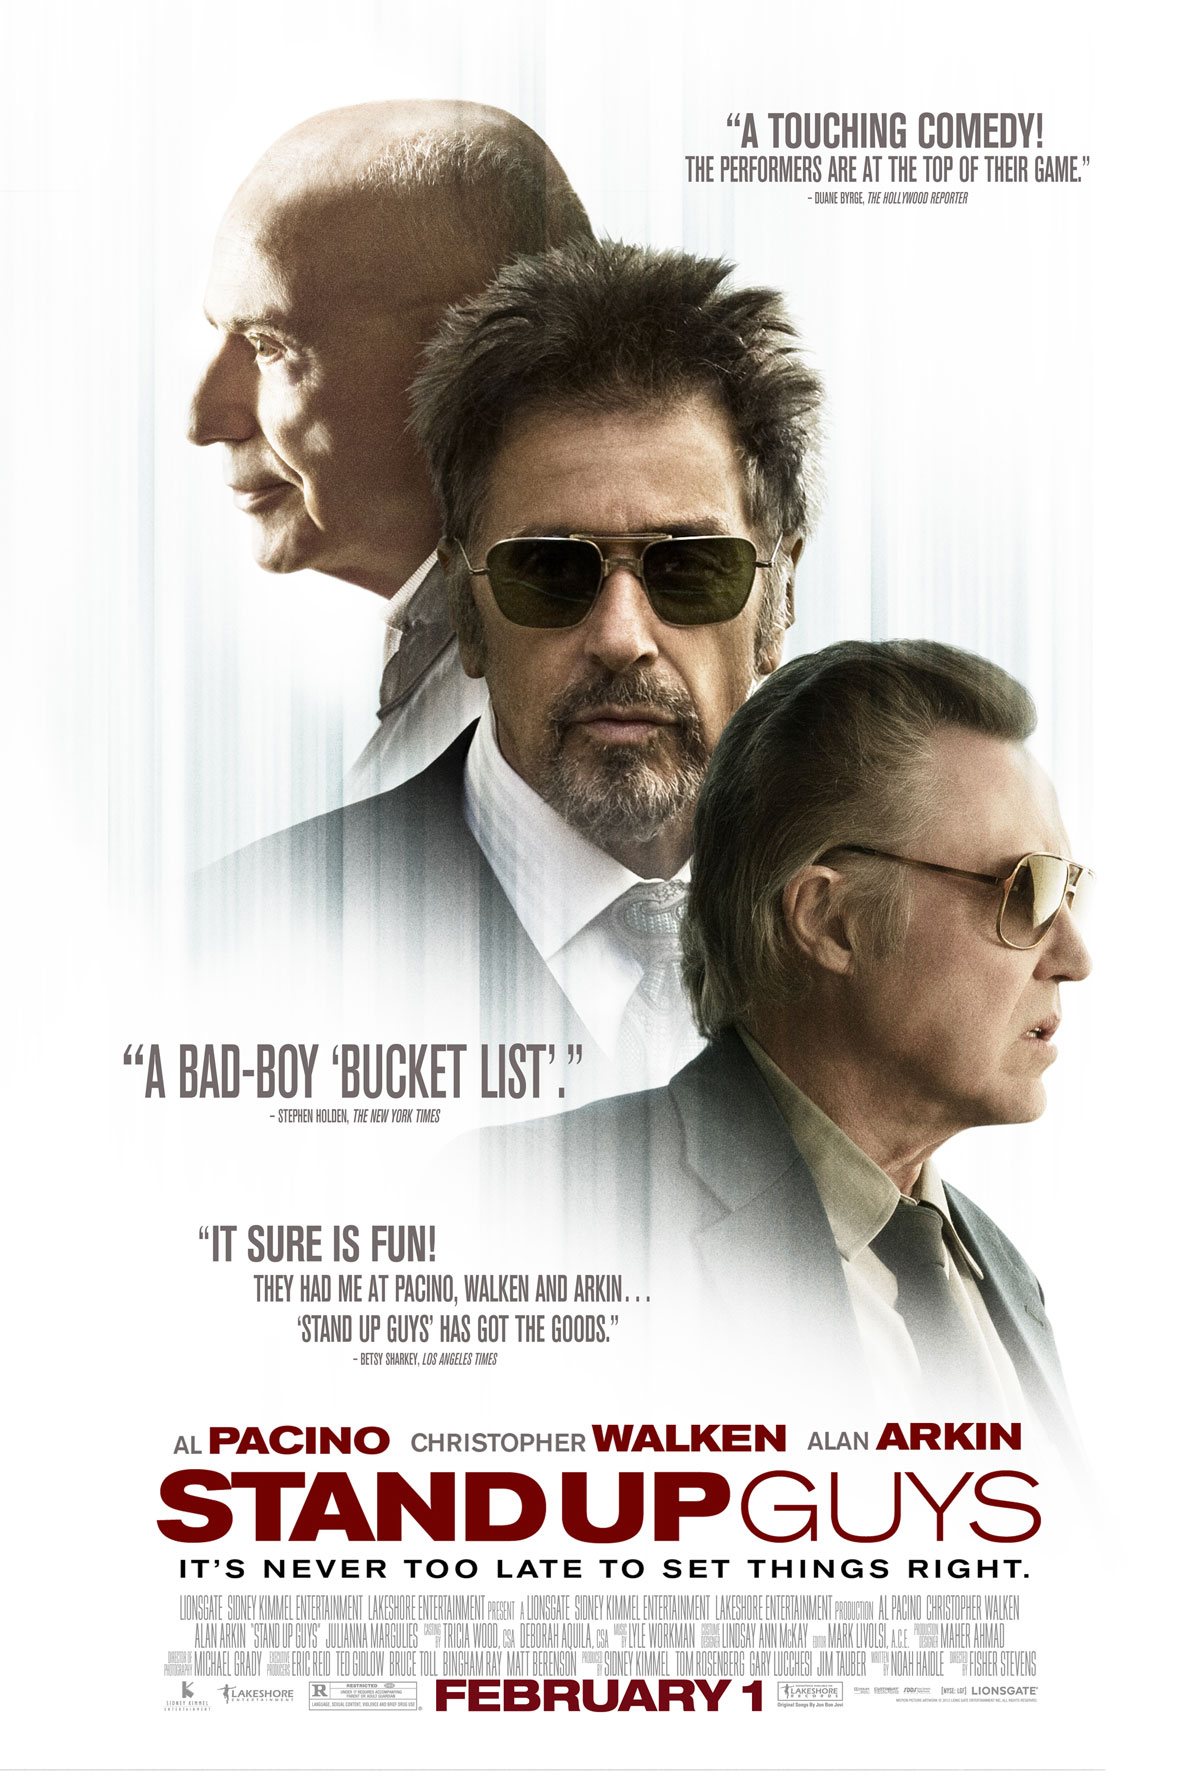 EXCLUSIVE: Pacino, Walken, Arkin are 'Stand Up Guys' in ...